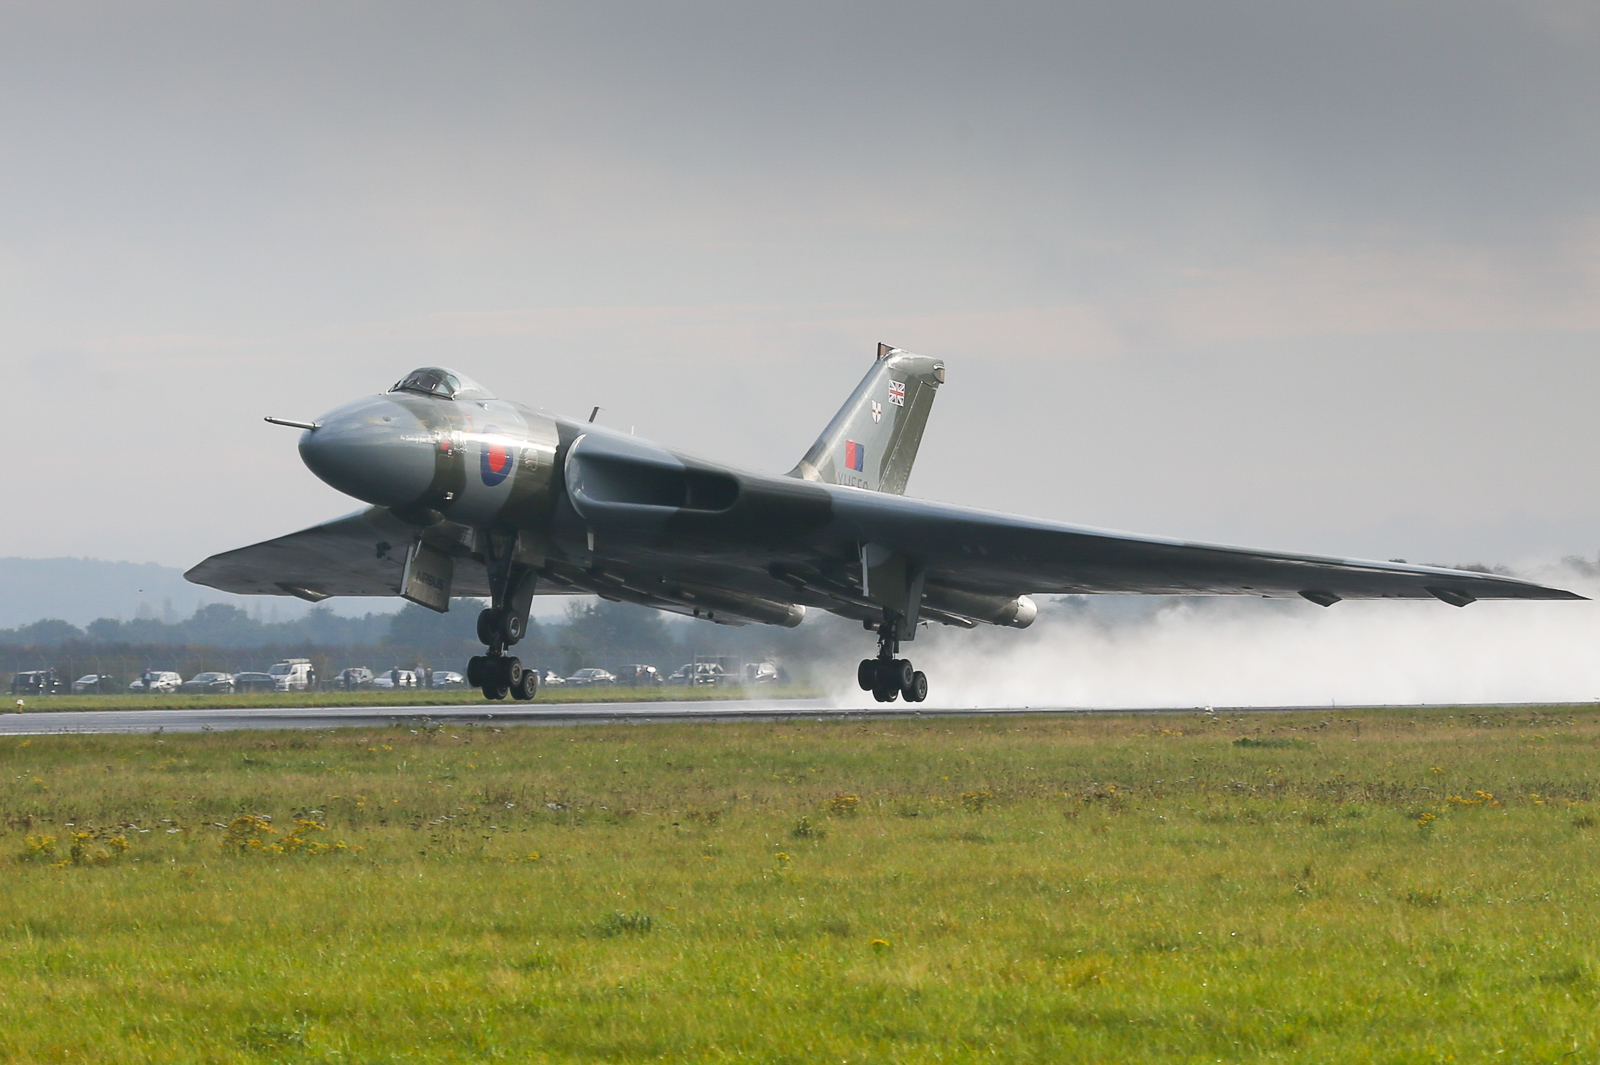 XH558 taking off for the last time. (photo by Steven Comber)